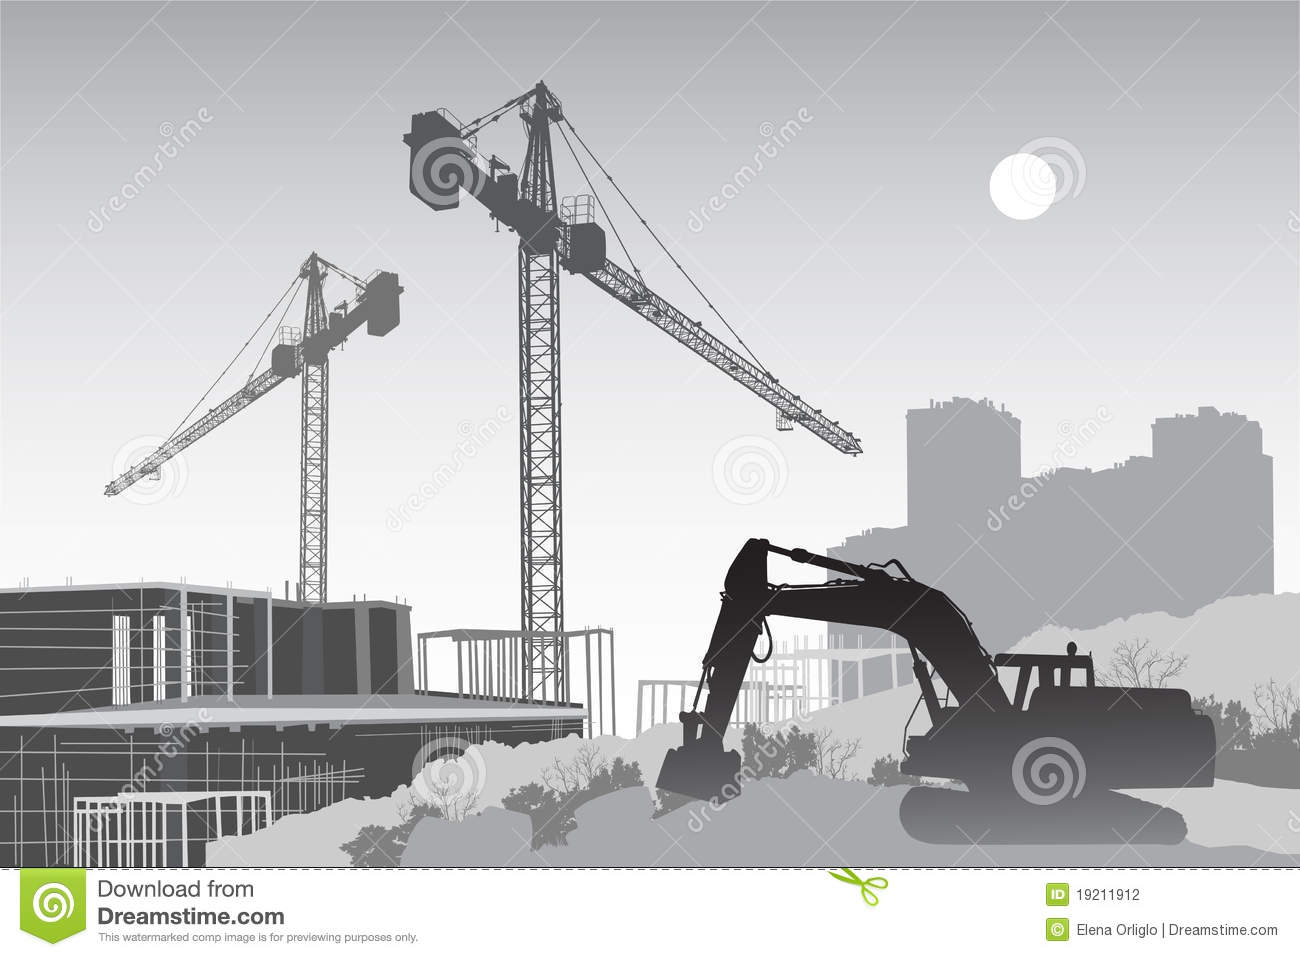 Chantier de construction avec des grues